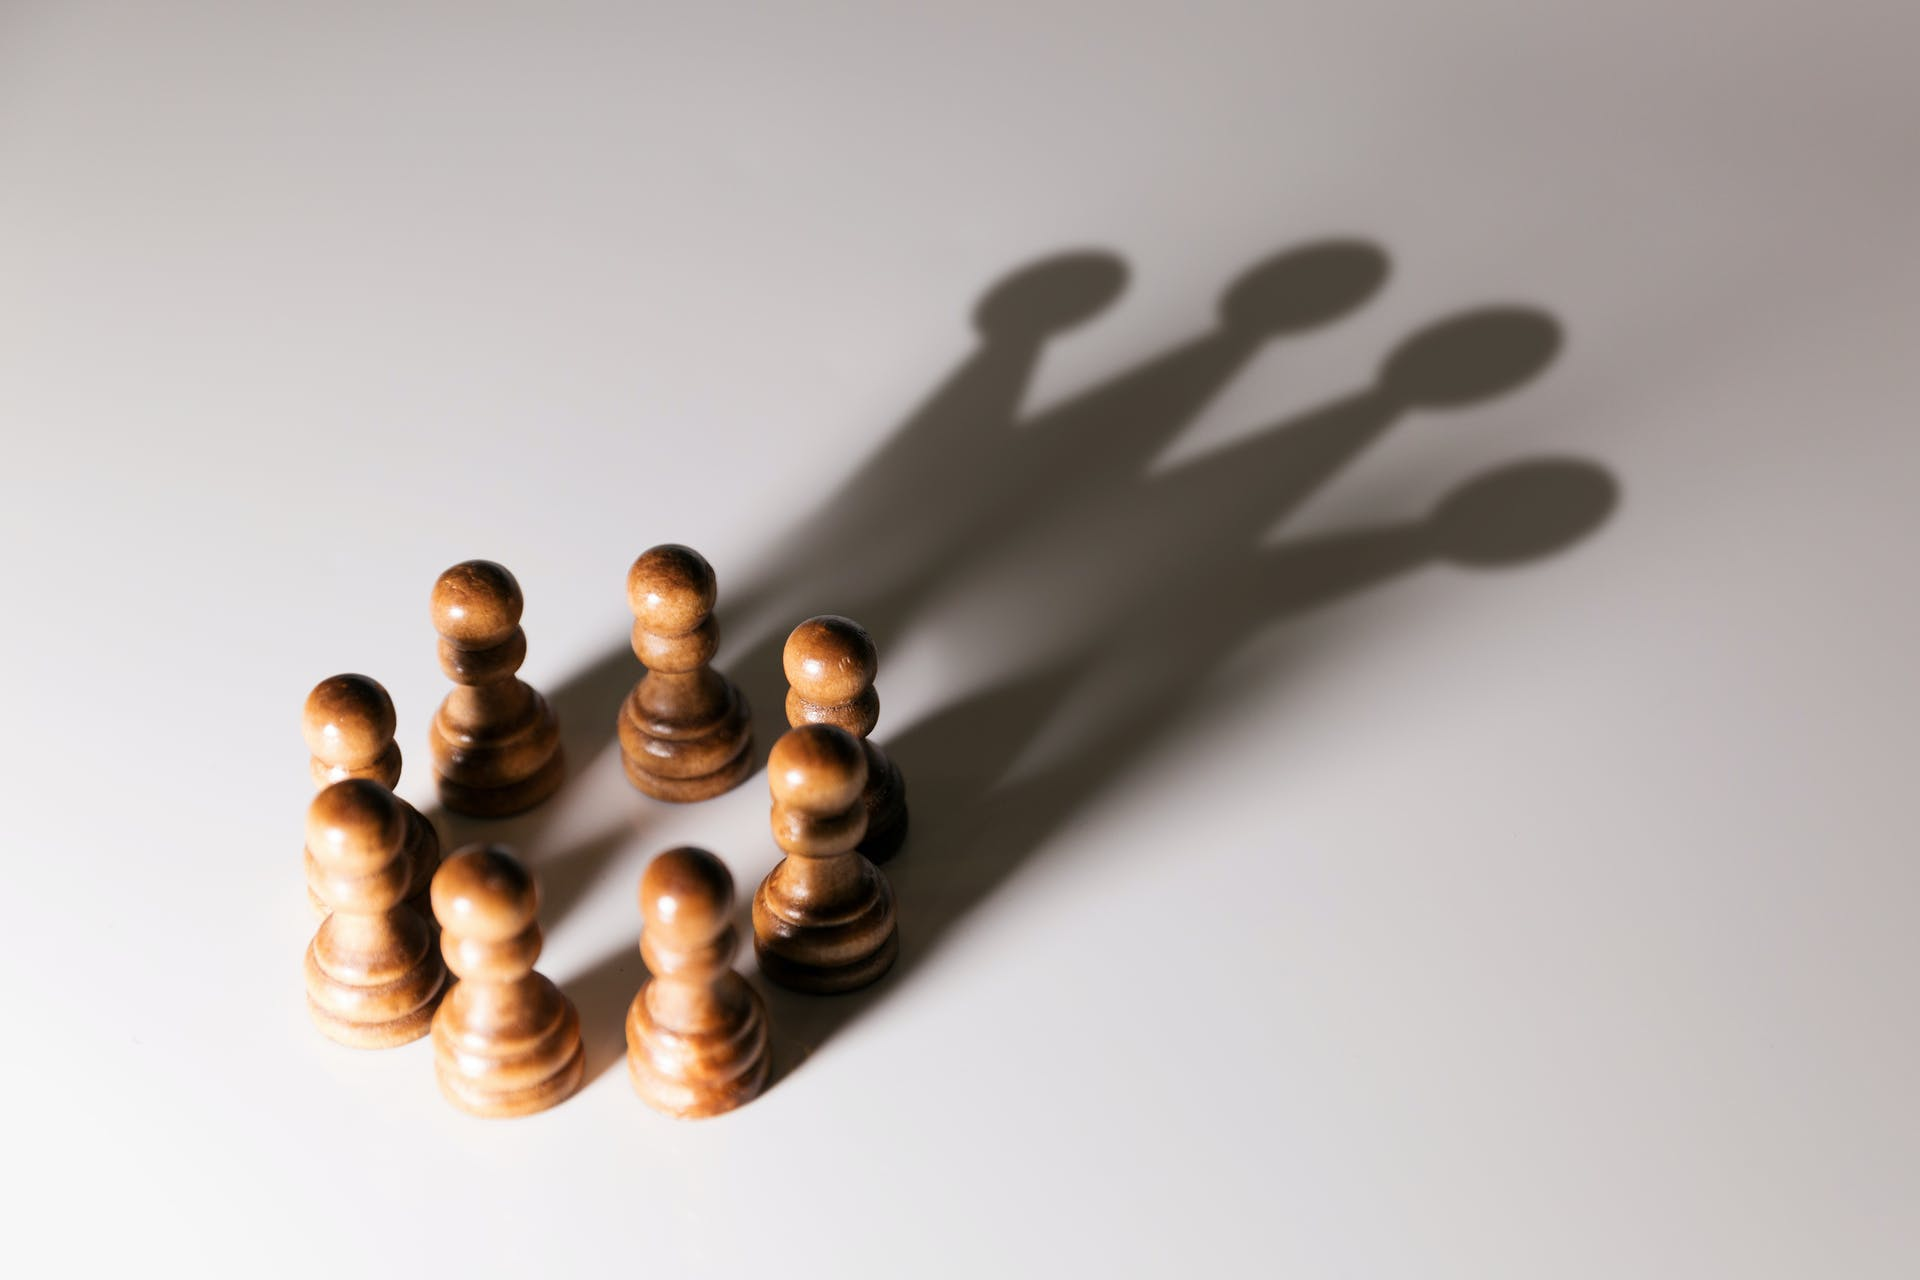 Chess pawns in a circle, with a shadow projecting the image of a crown.